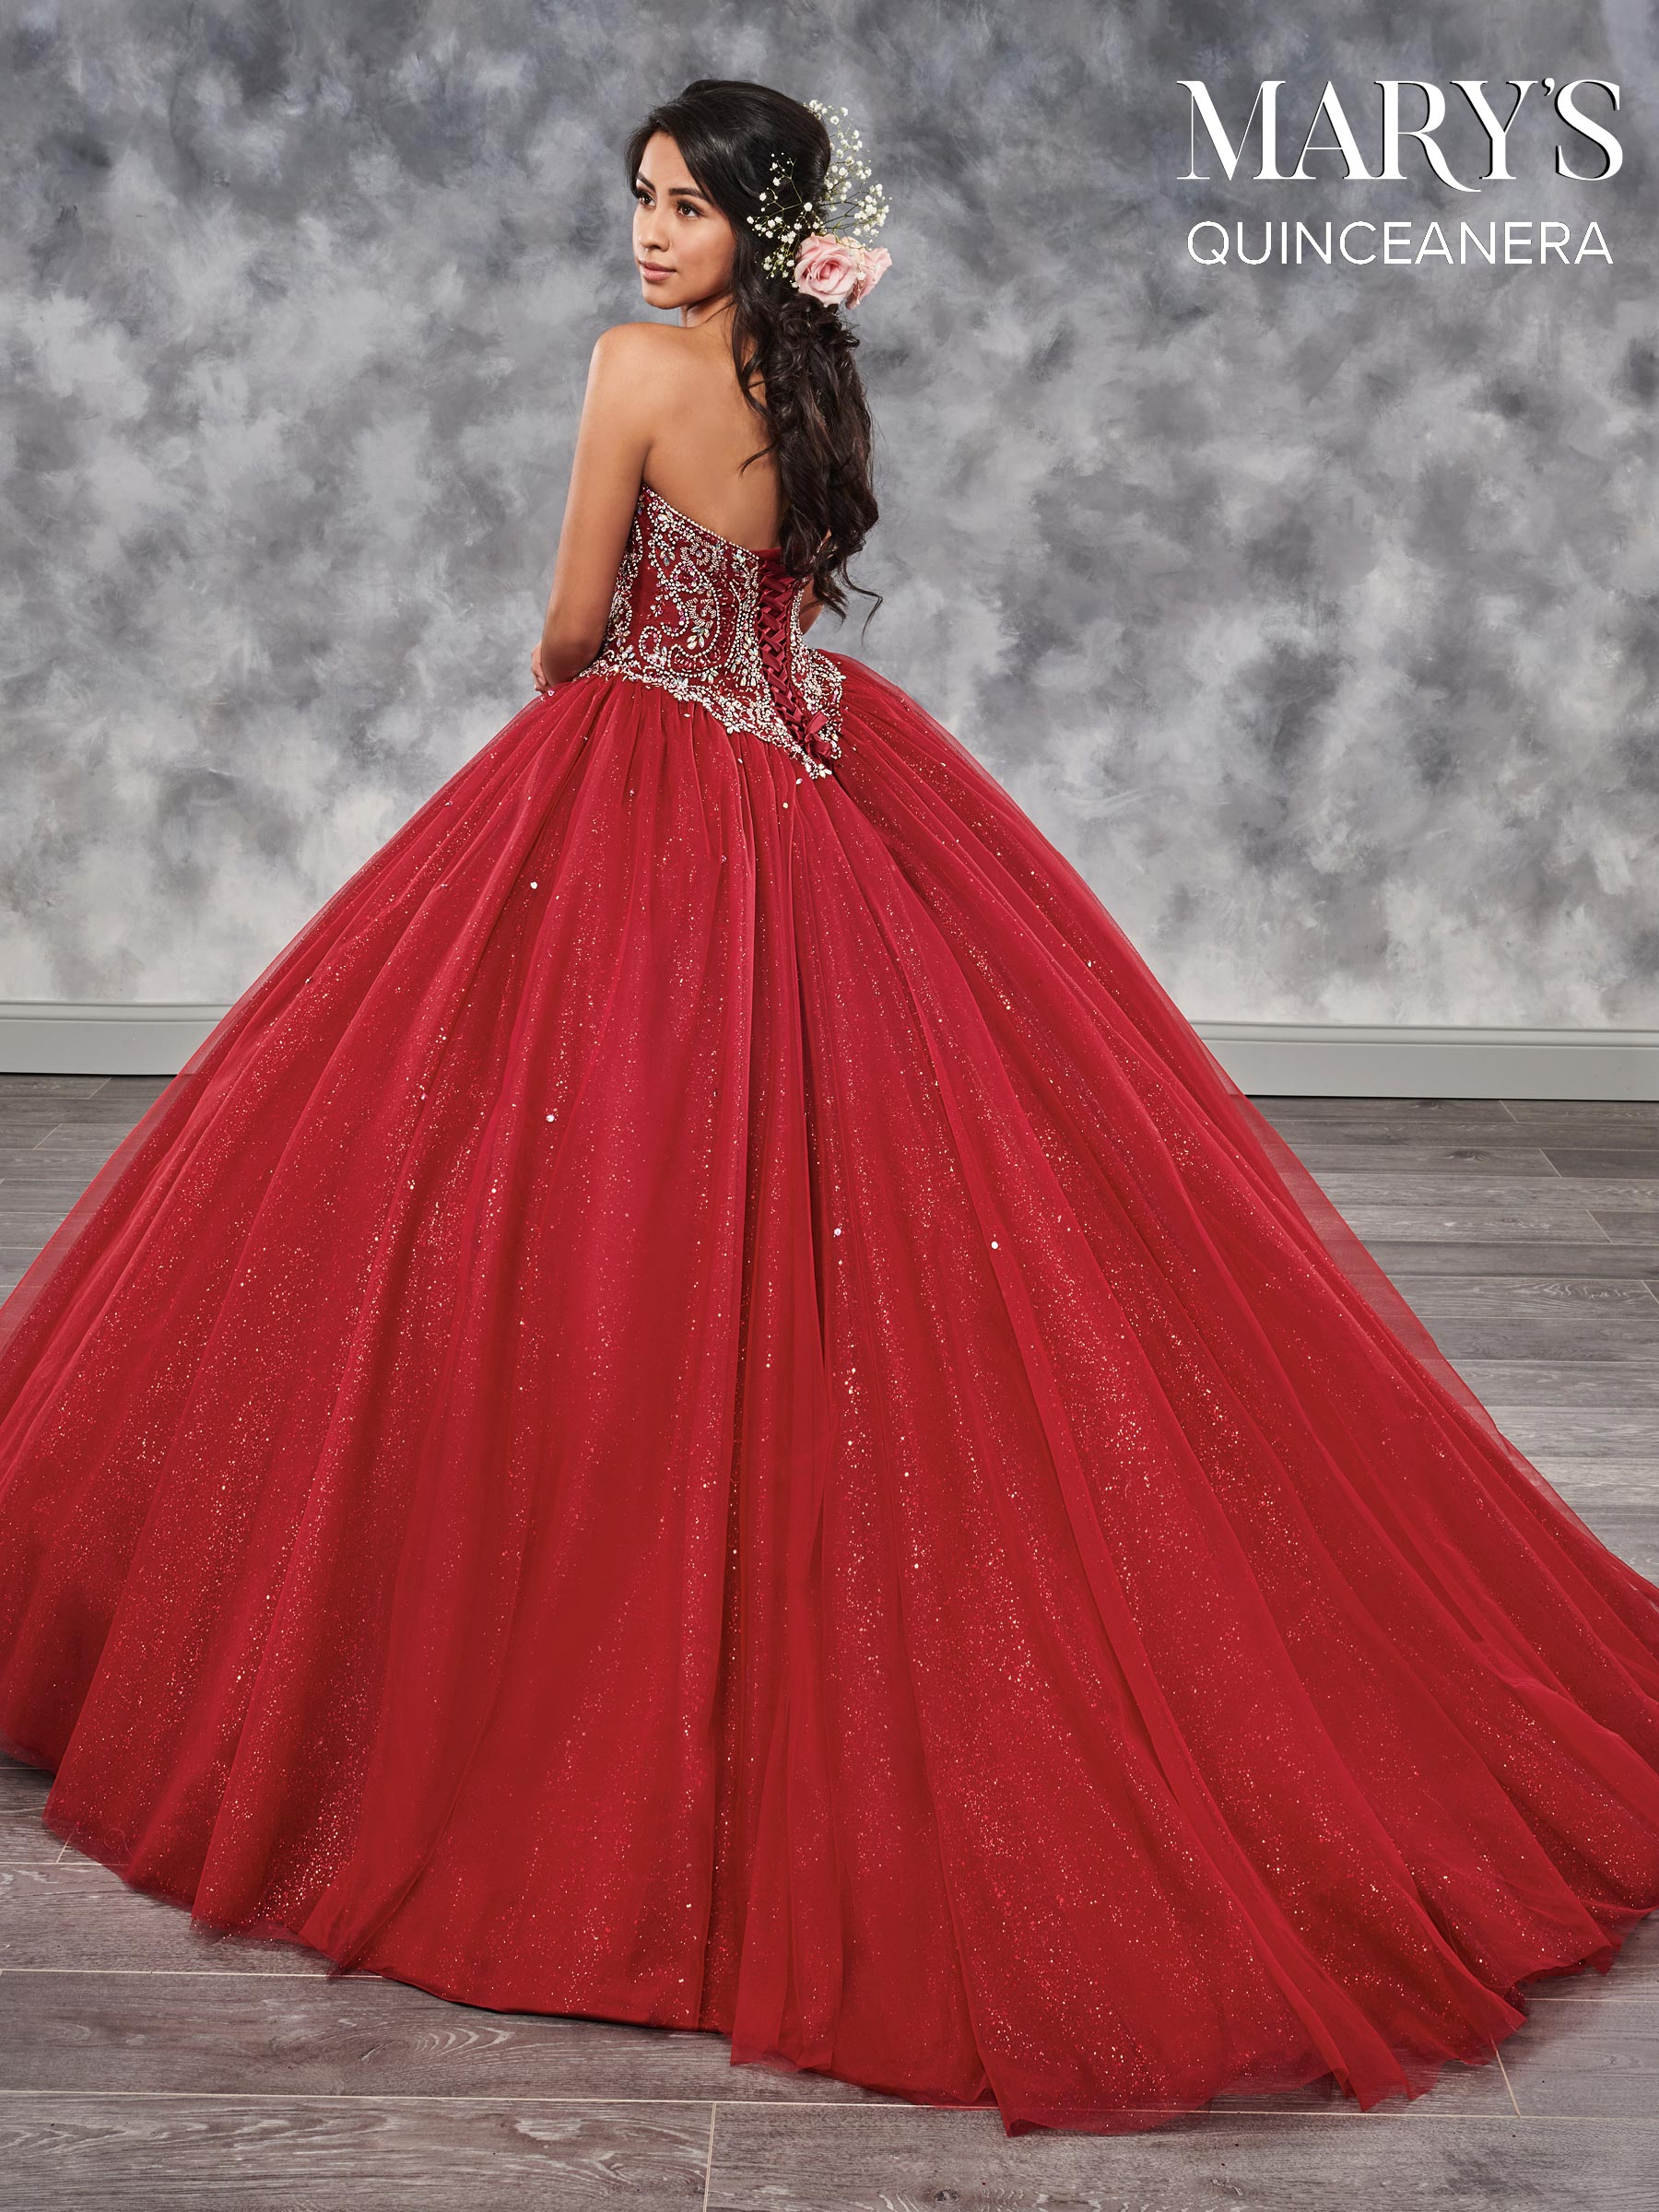 Marys Quinceanera Dresses | Mary's Quinceanera | Style - MQ1023